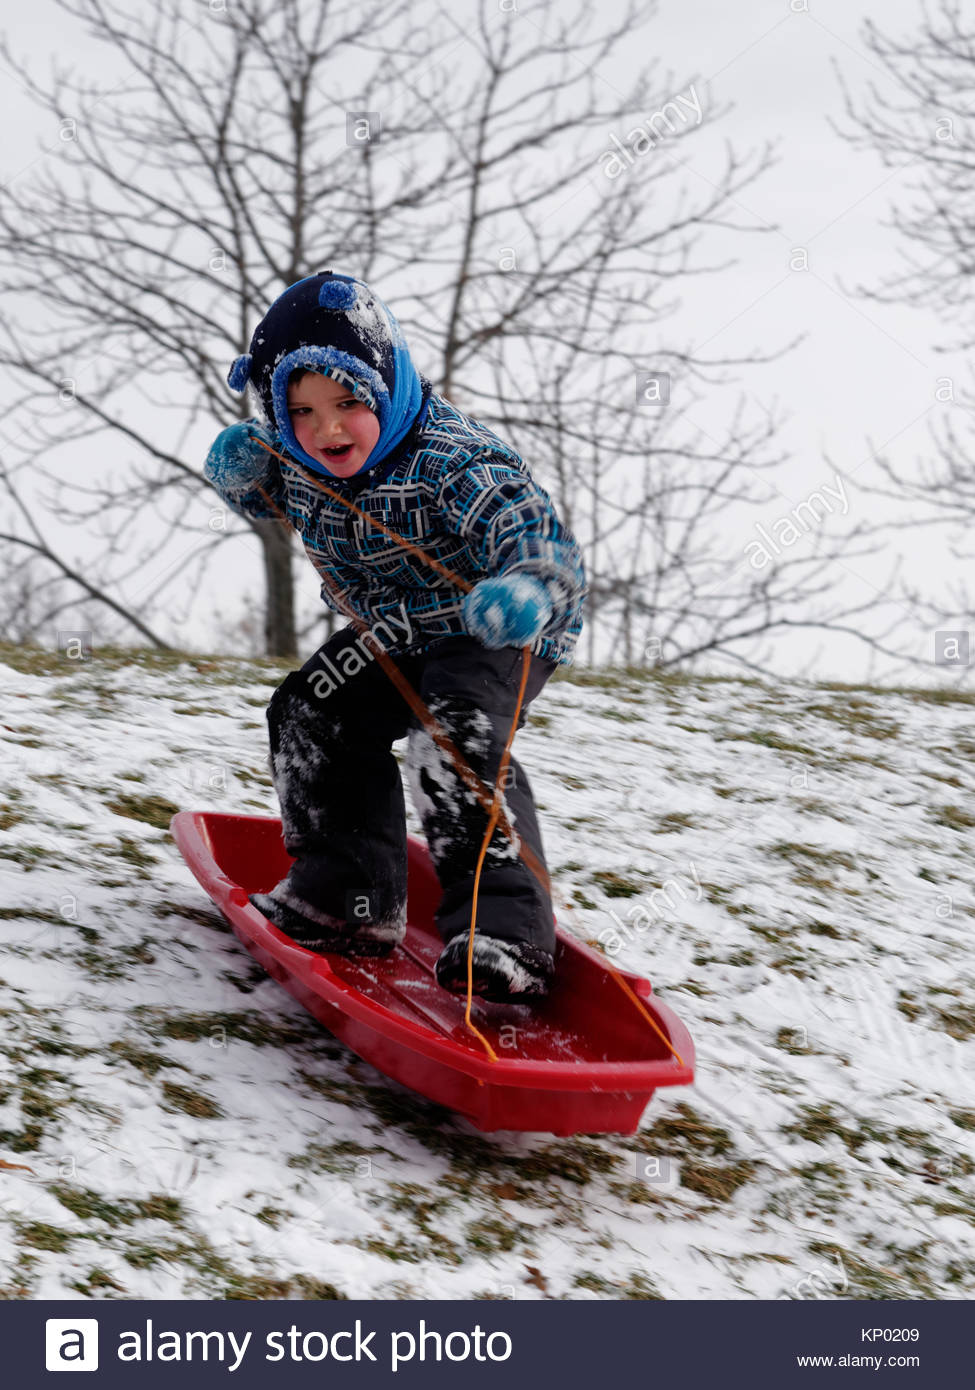 A little boy (5 yr old) snowboarding by standing in his sledge going down a slope. - Stock Image